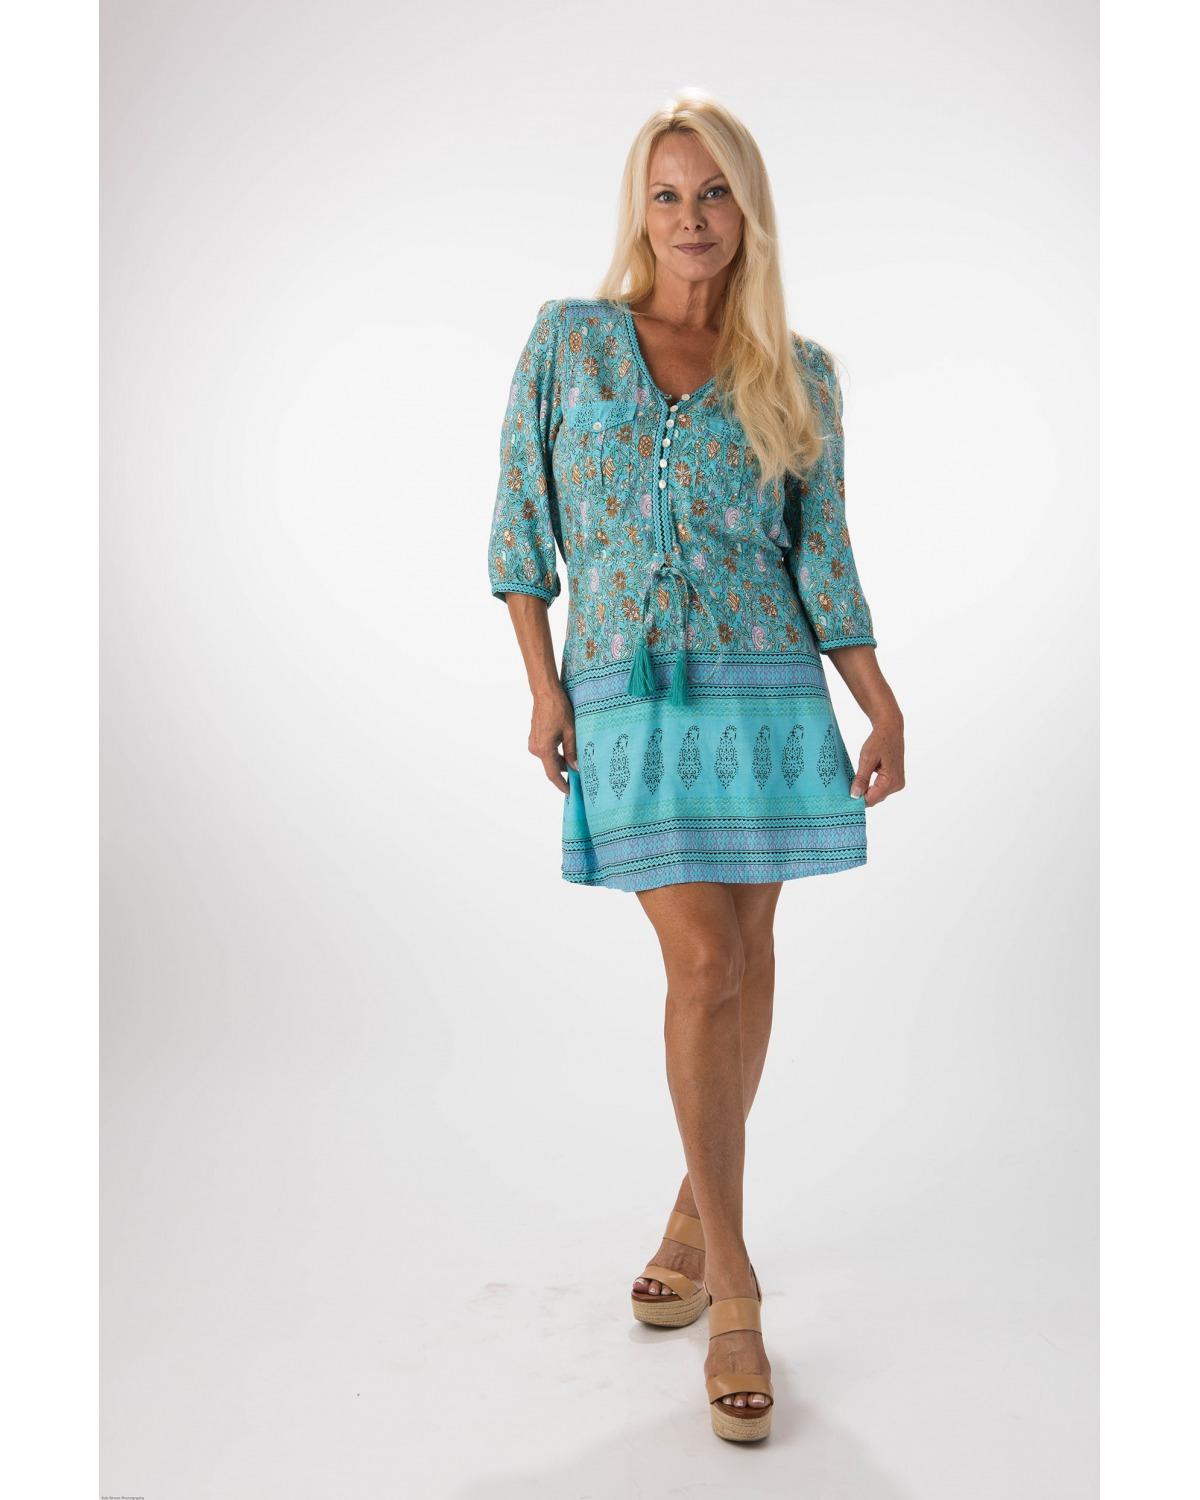 http://deanalan.us/1961-thickbox_default/north-shore-tunic-dress.jpg